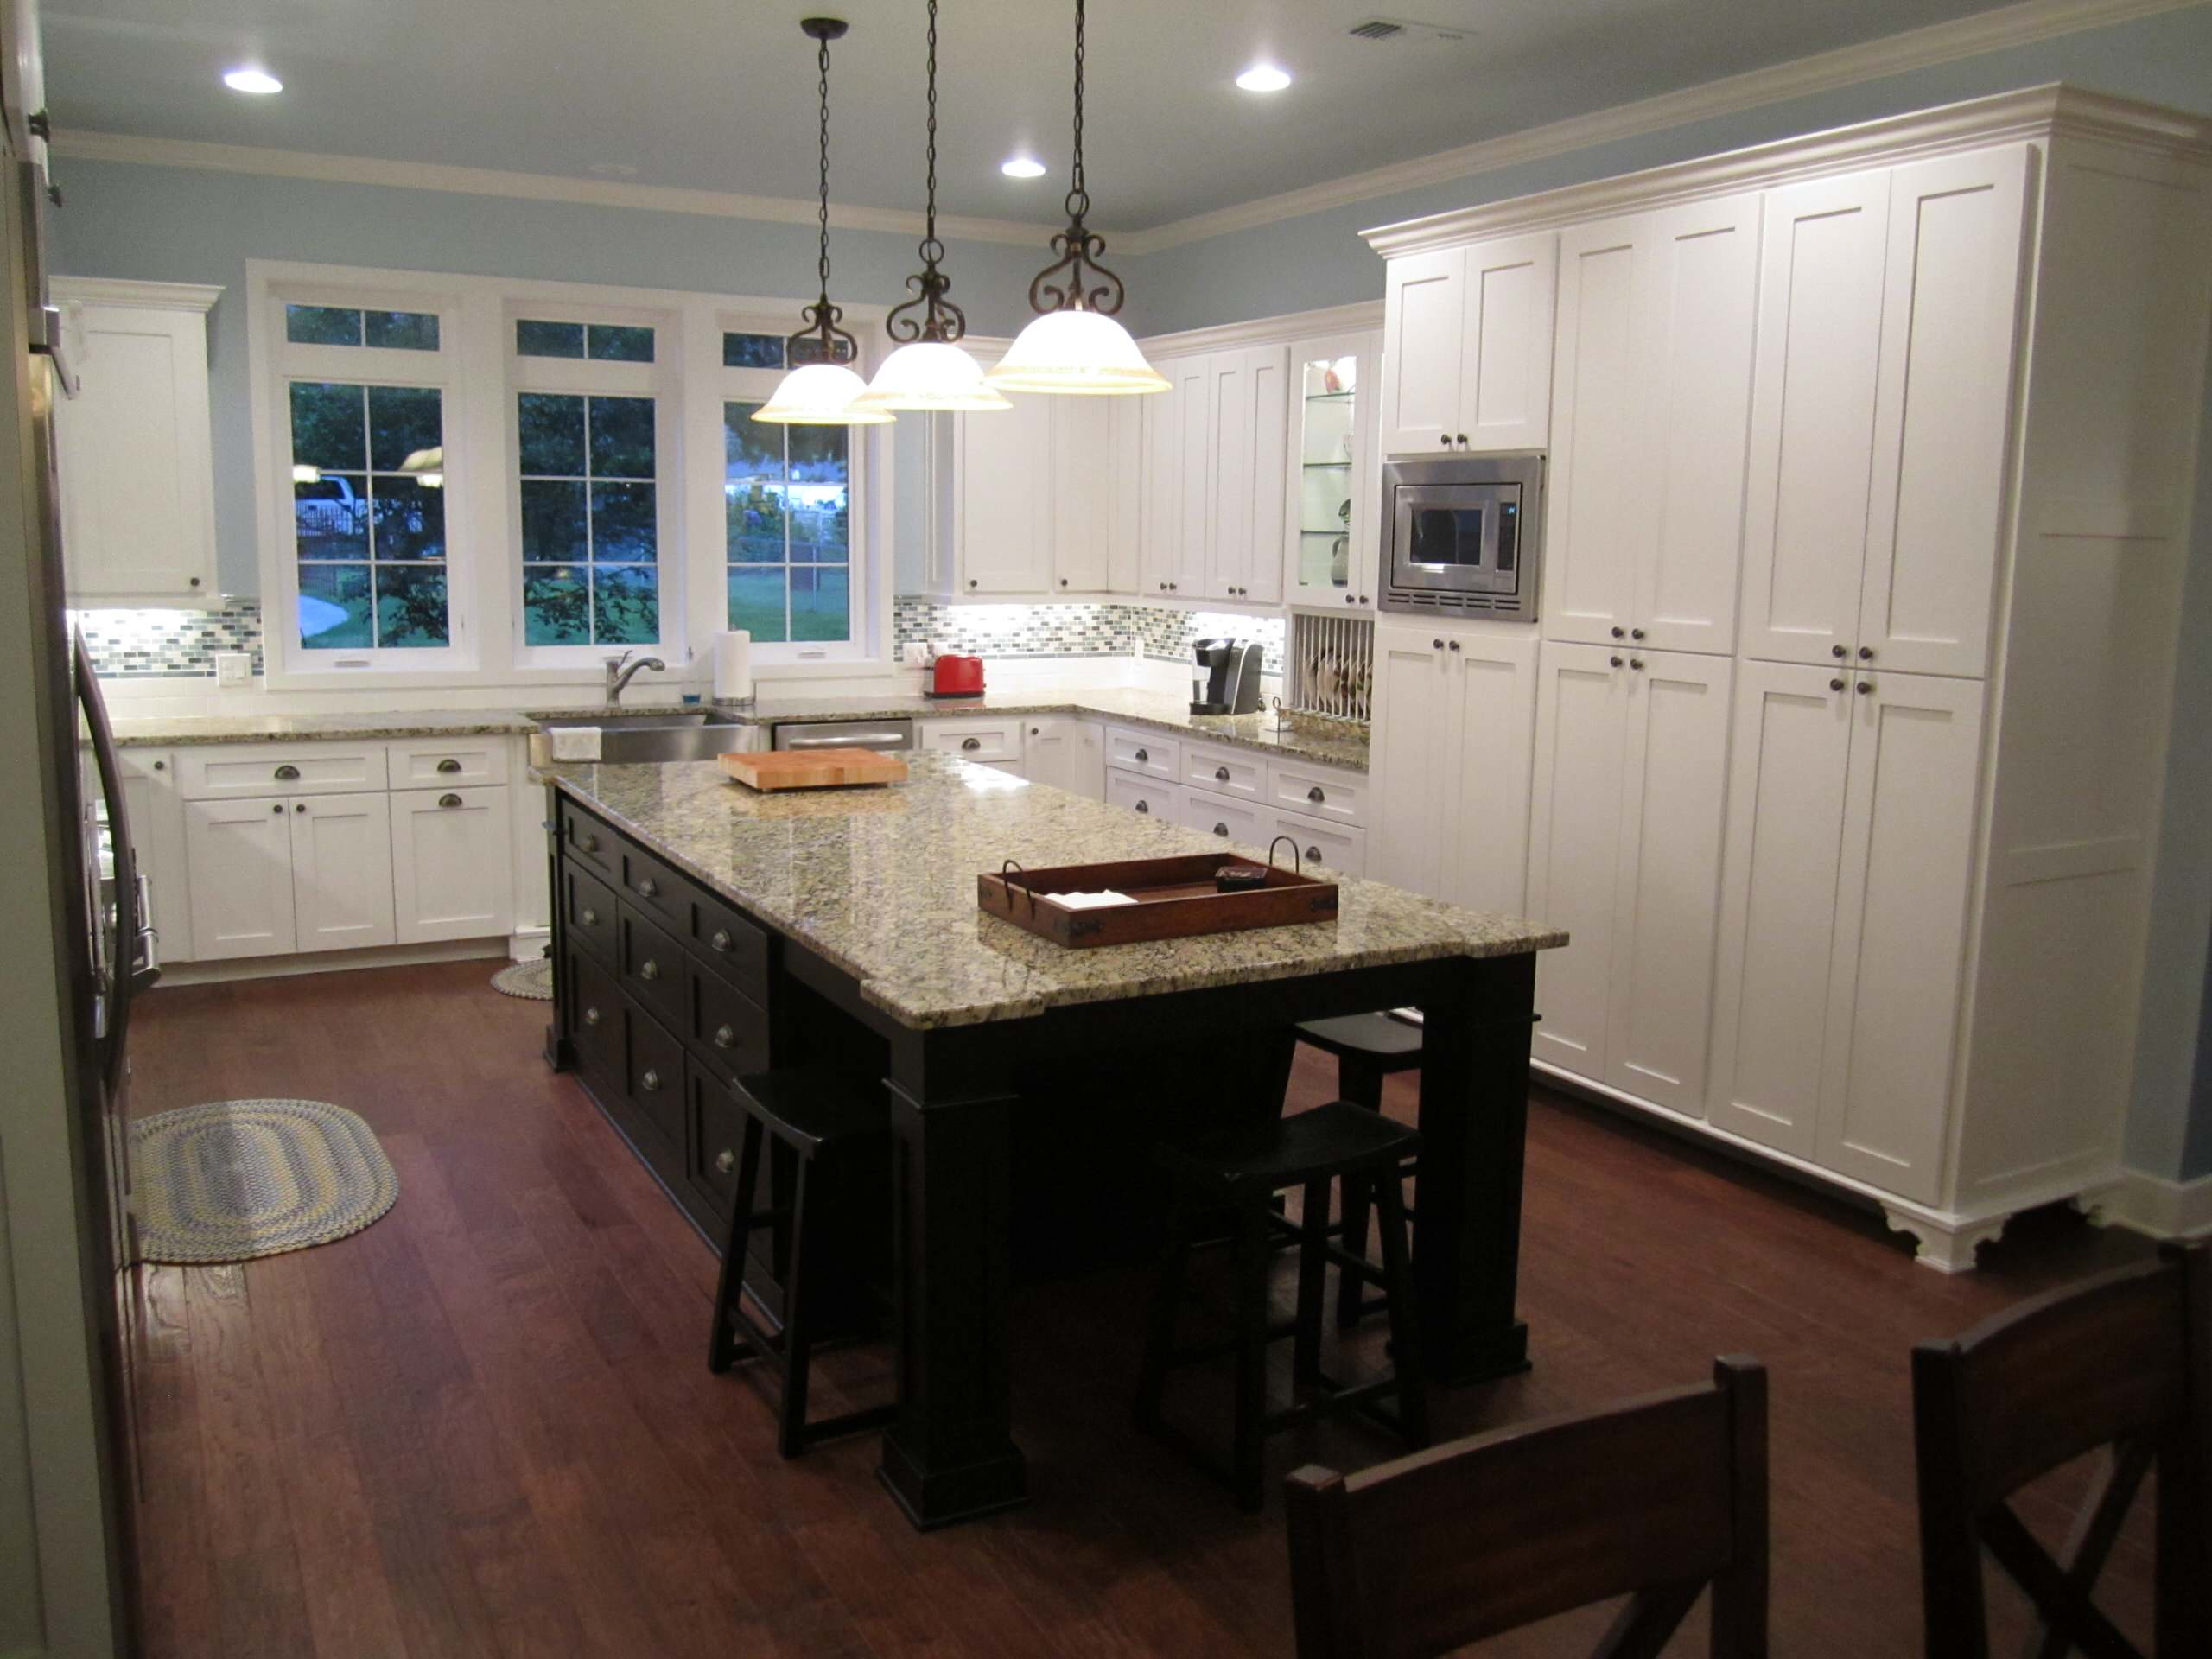 NEW KITCHEN AFTER,